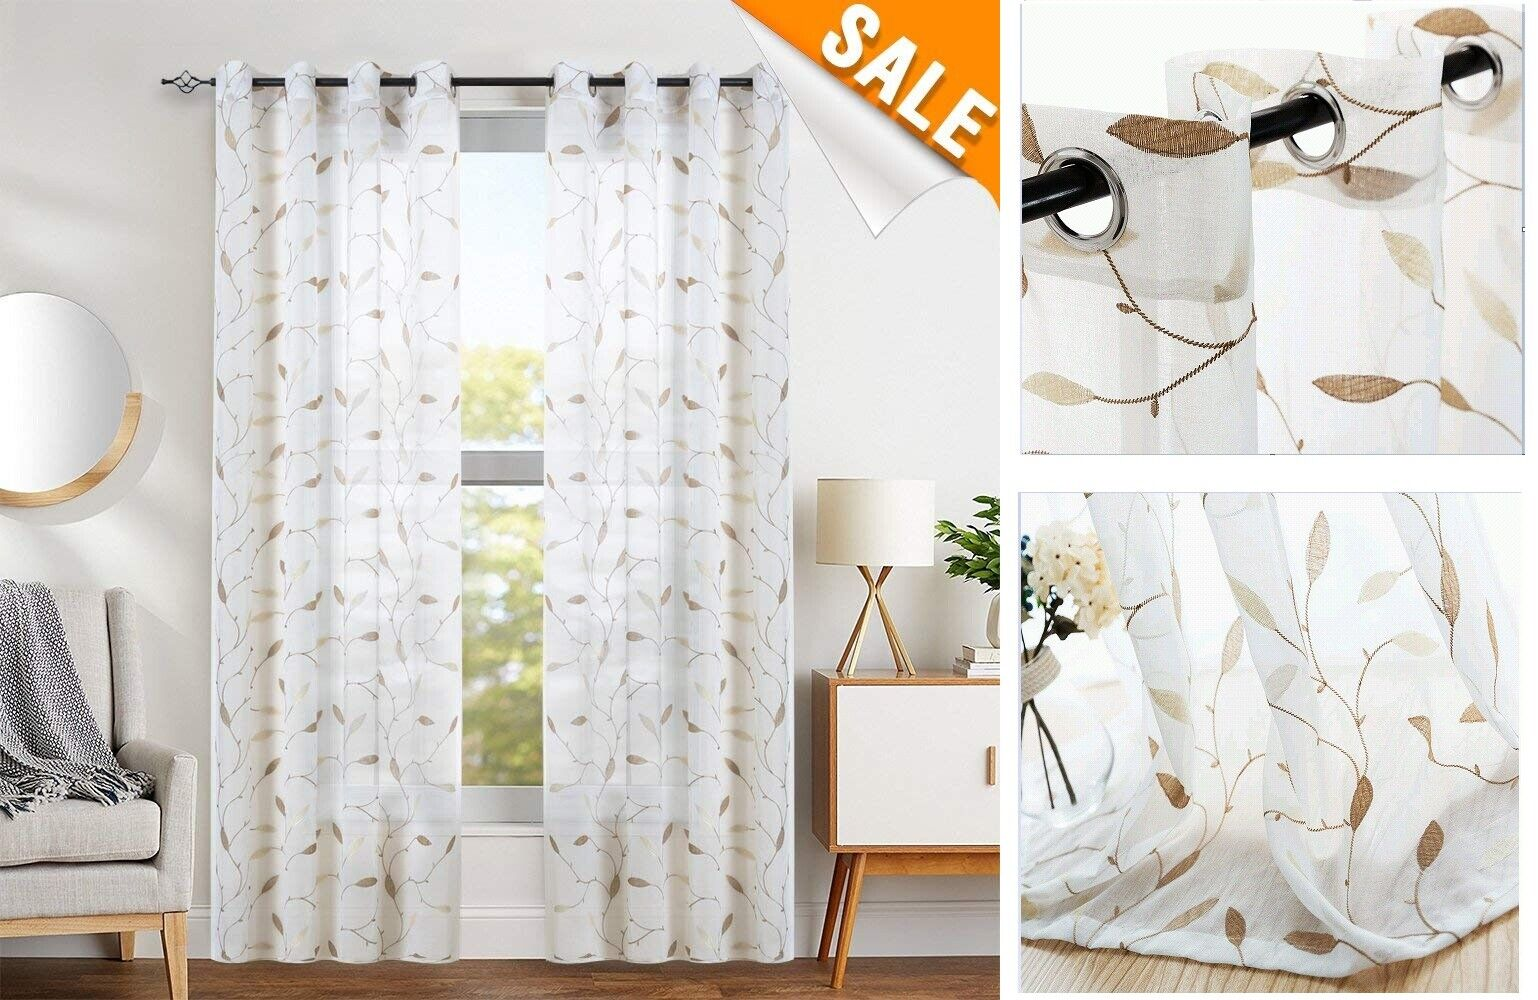 White French Do Curtains F Living Room Floral Embroidery Semi Sheer Curtains F B For Sale Online Ebay